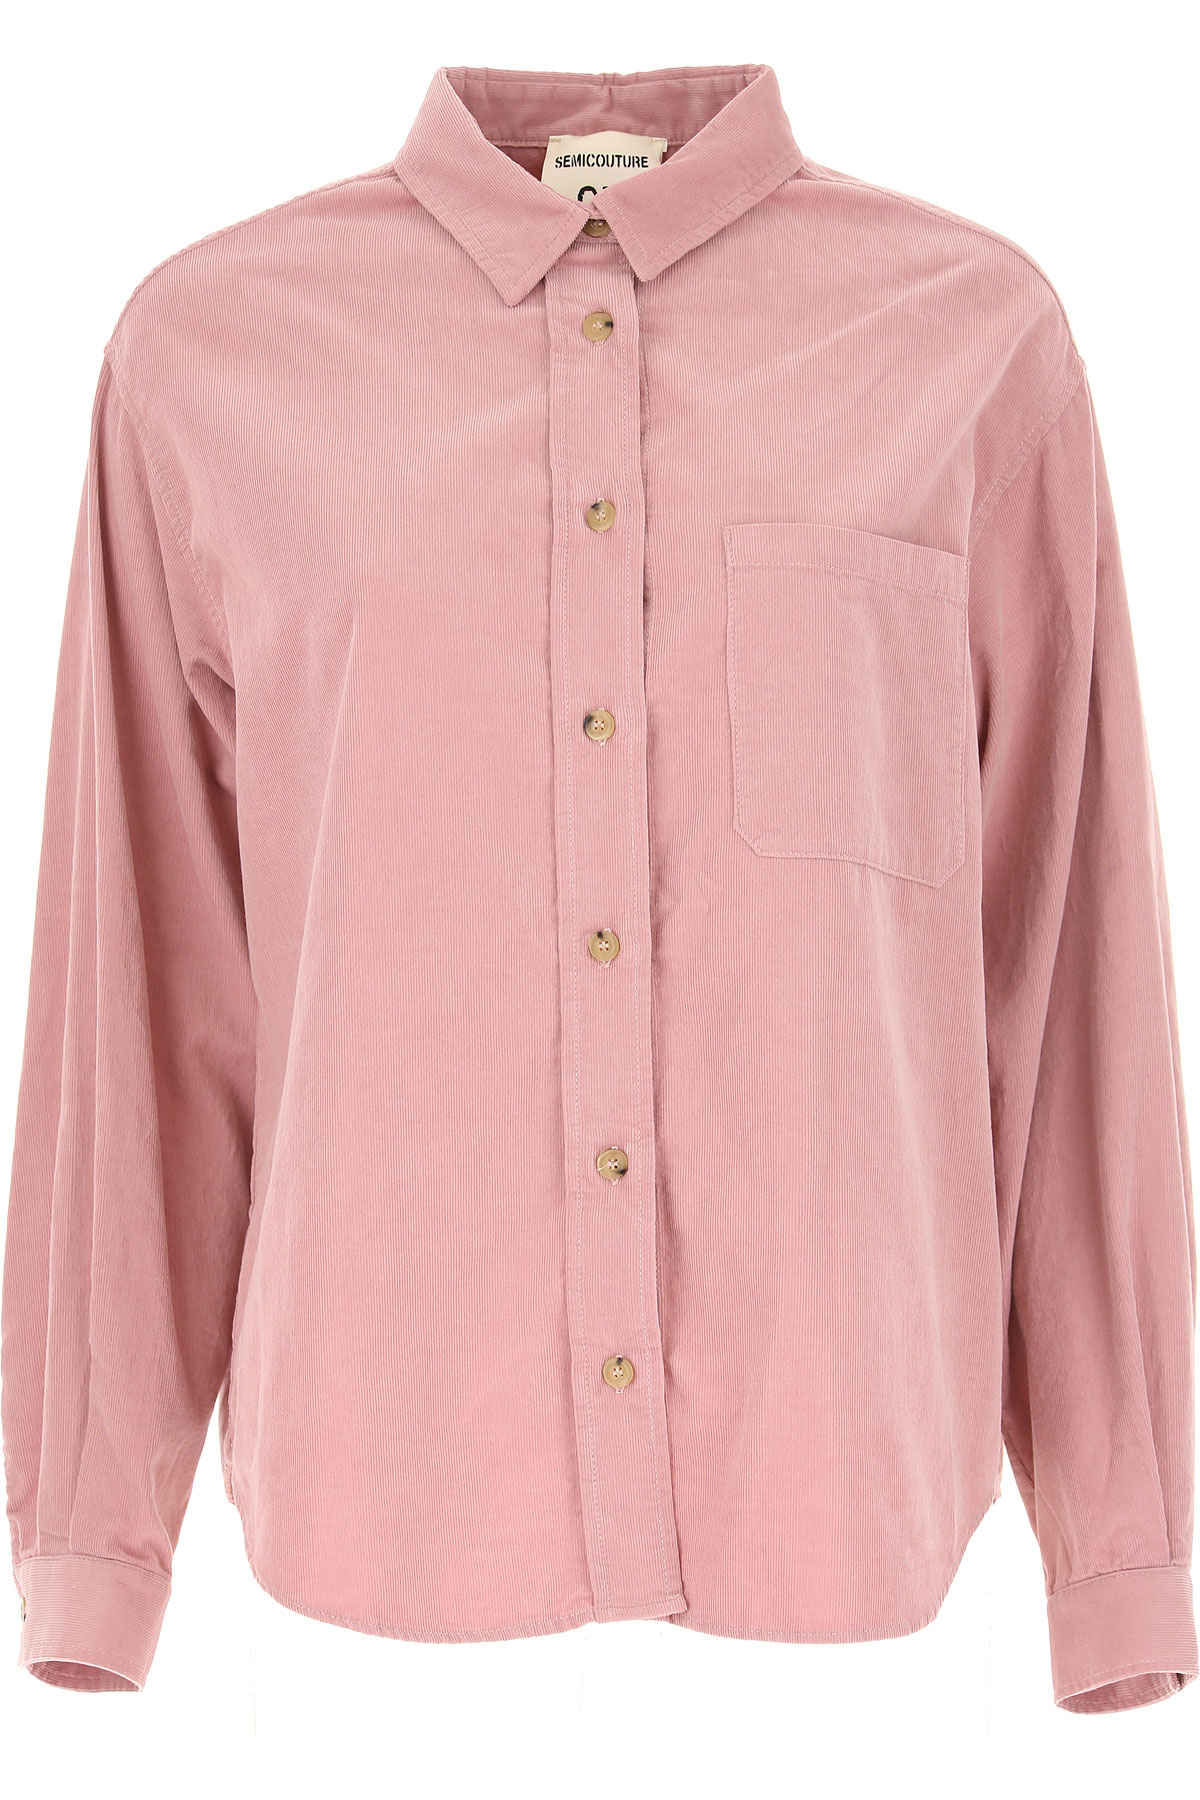 Semicouture Top for Women On Sale, Pink, Cotton, 2019, 2 4 6